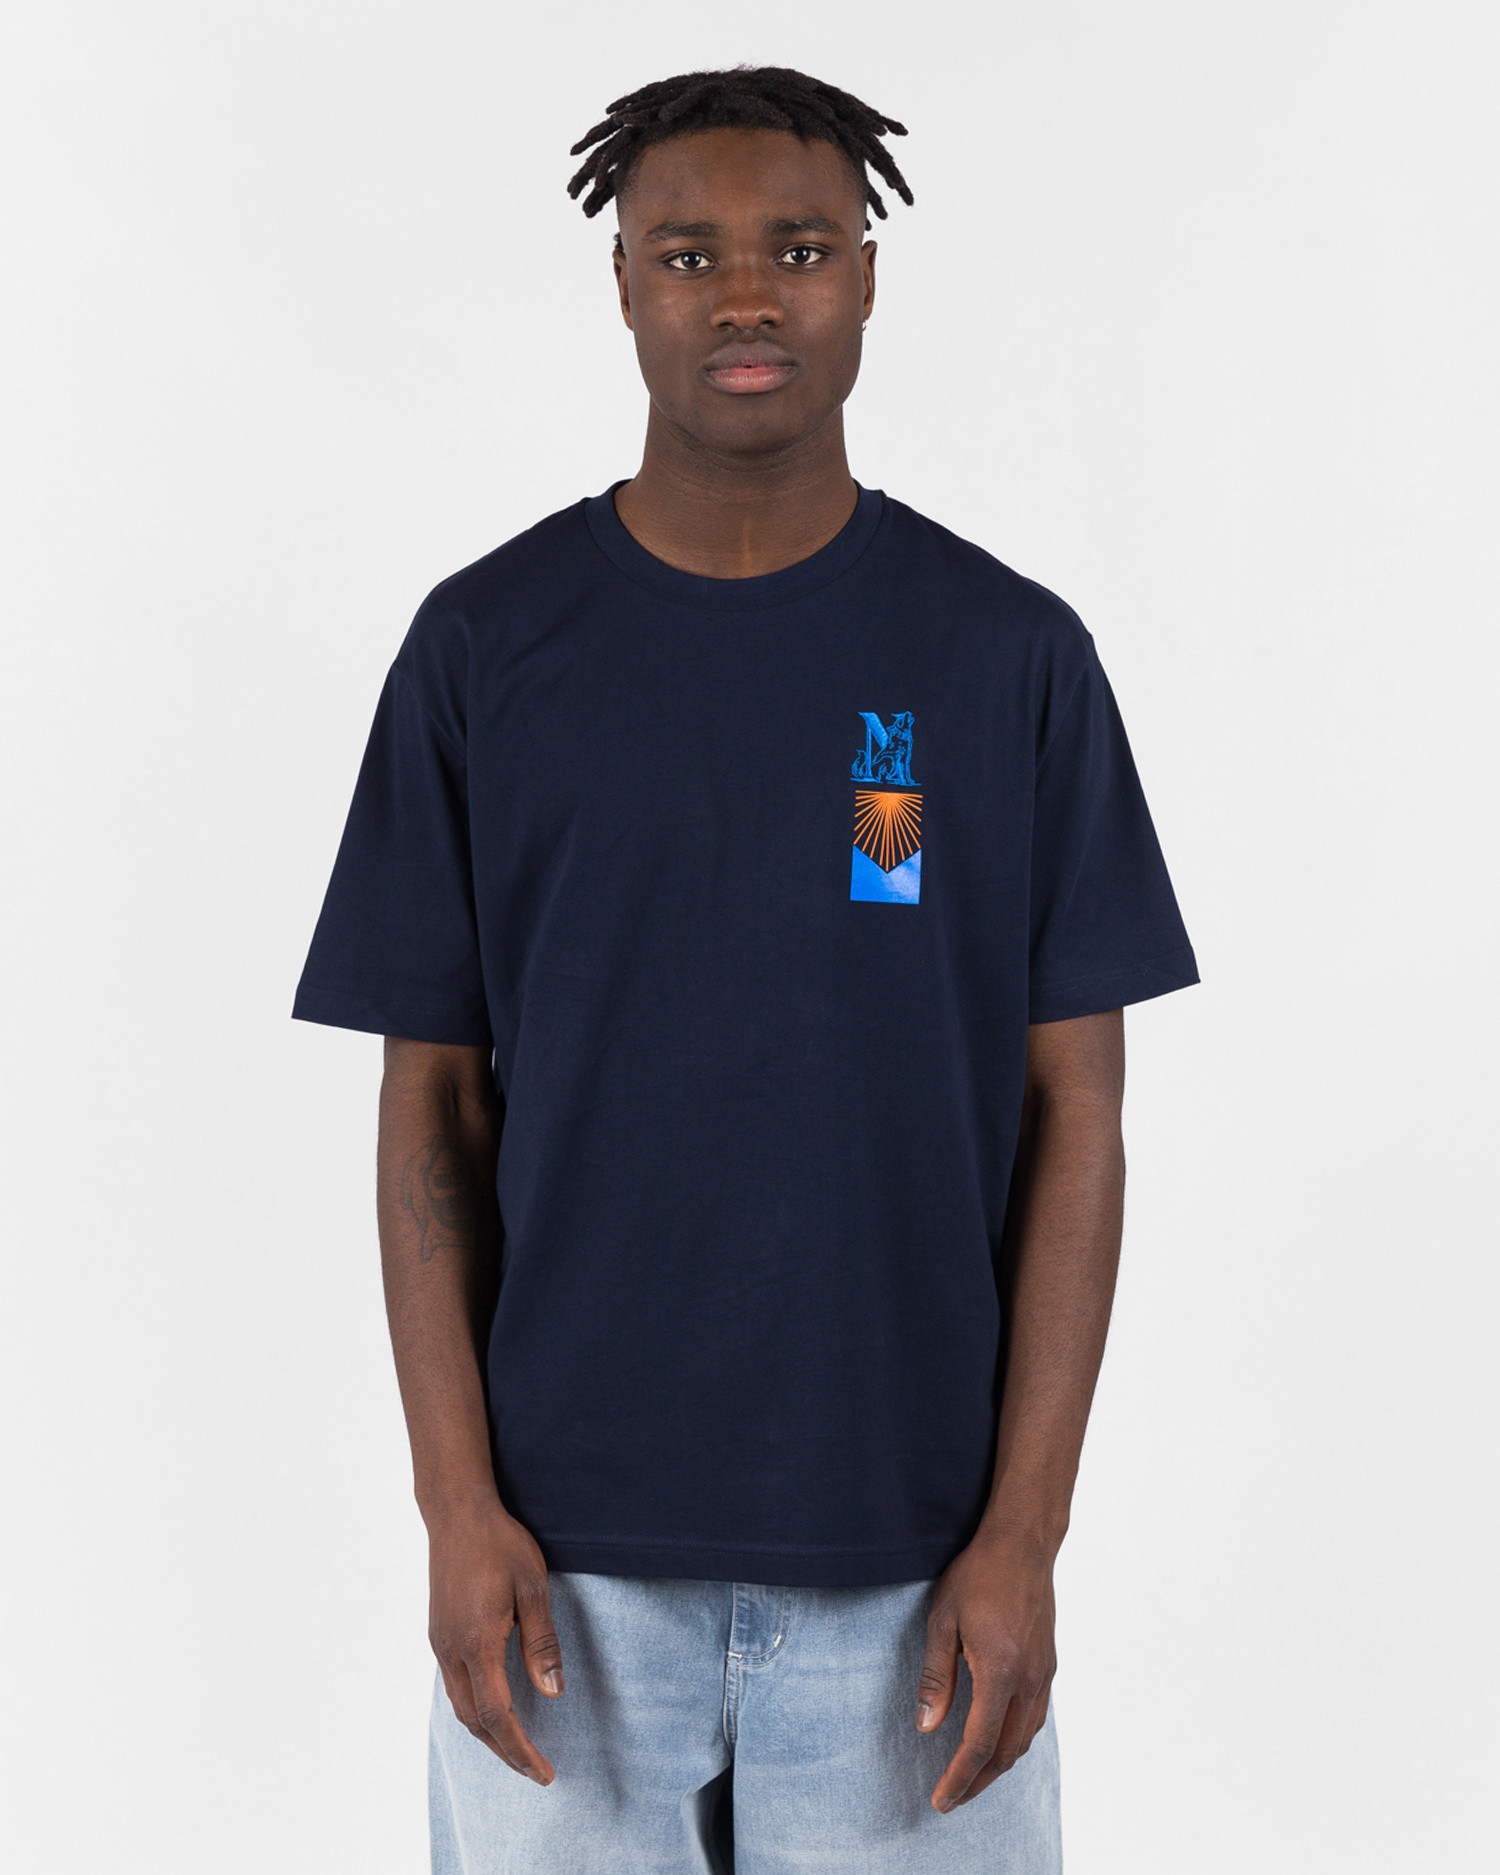 NO US Harran T-Shirt Navy Blue